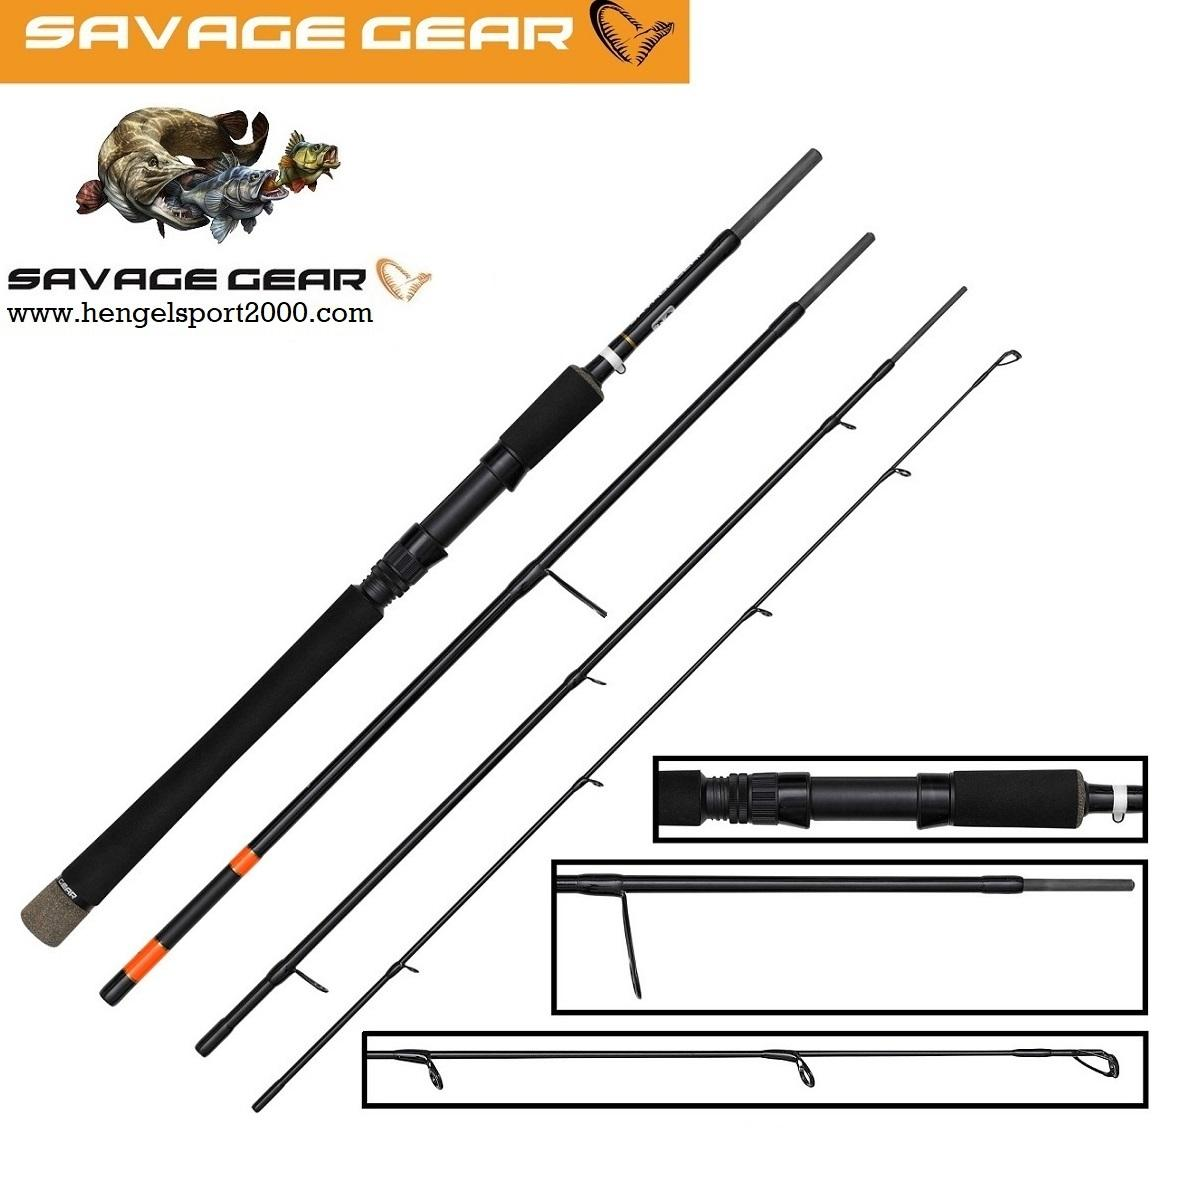 Savage Gear Multi Purpose Predator2 Travel 243cm 40 - 80 gram